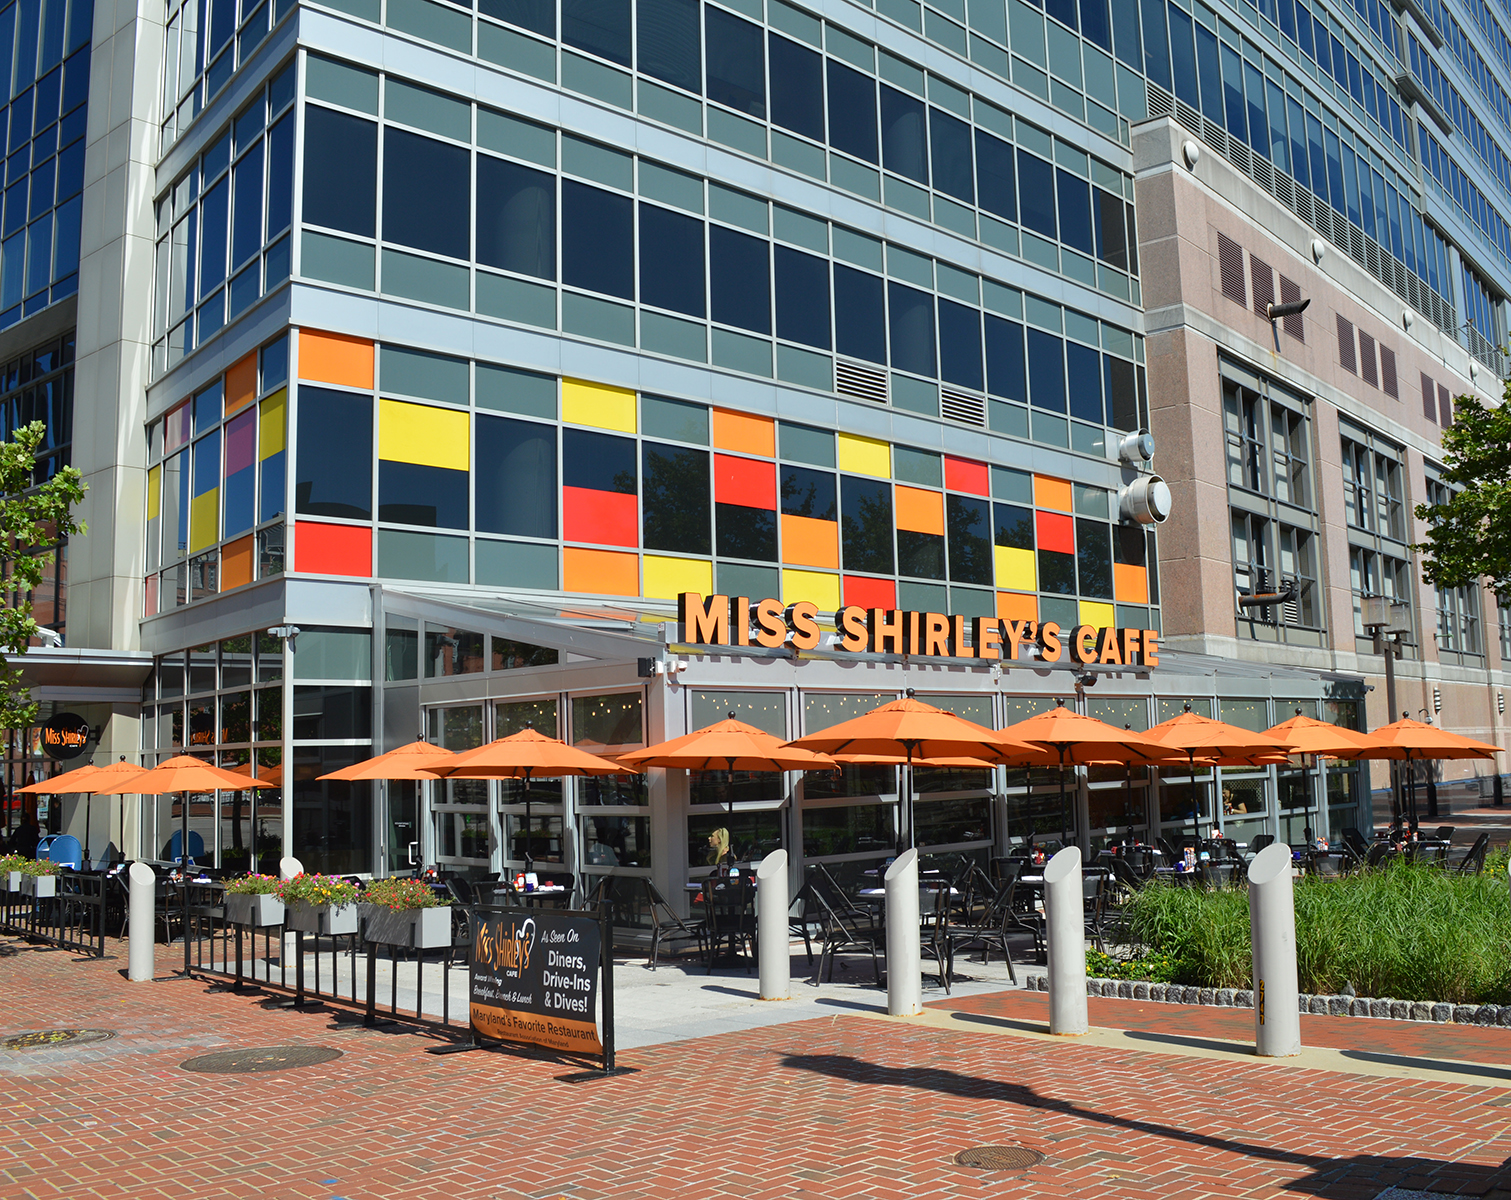 Restaurants Open On Christmas Day 2020 Baltimore Md Miss Shirley's Cafe   Maryland's Best Breakfast, Brunch and Lunch